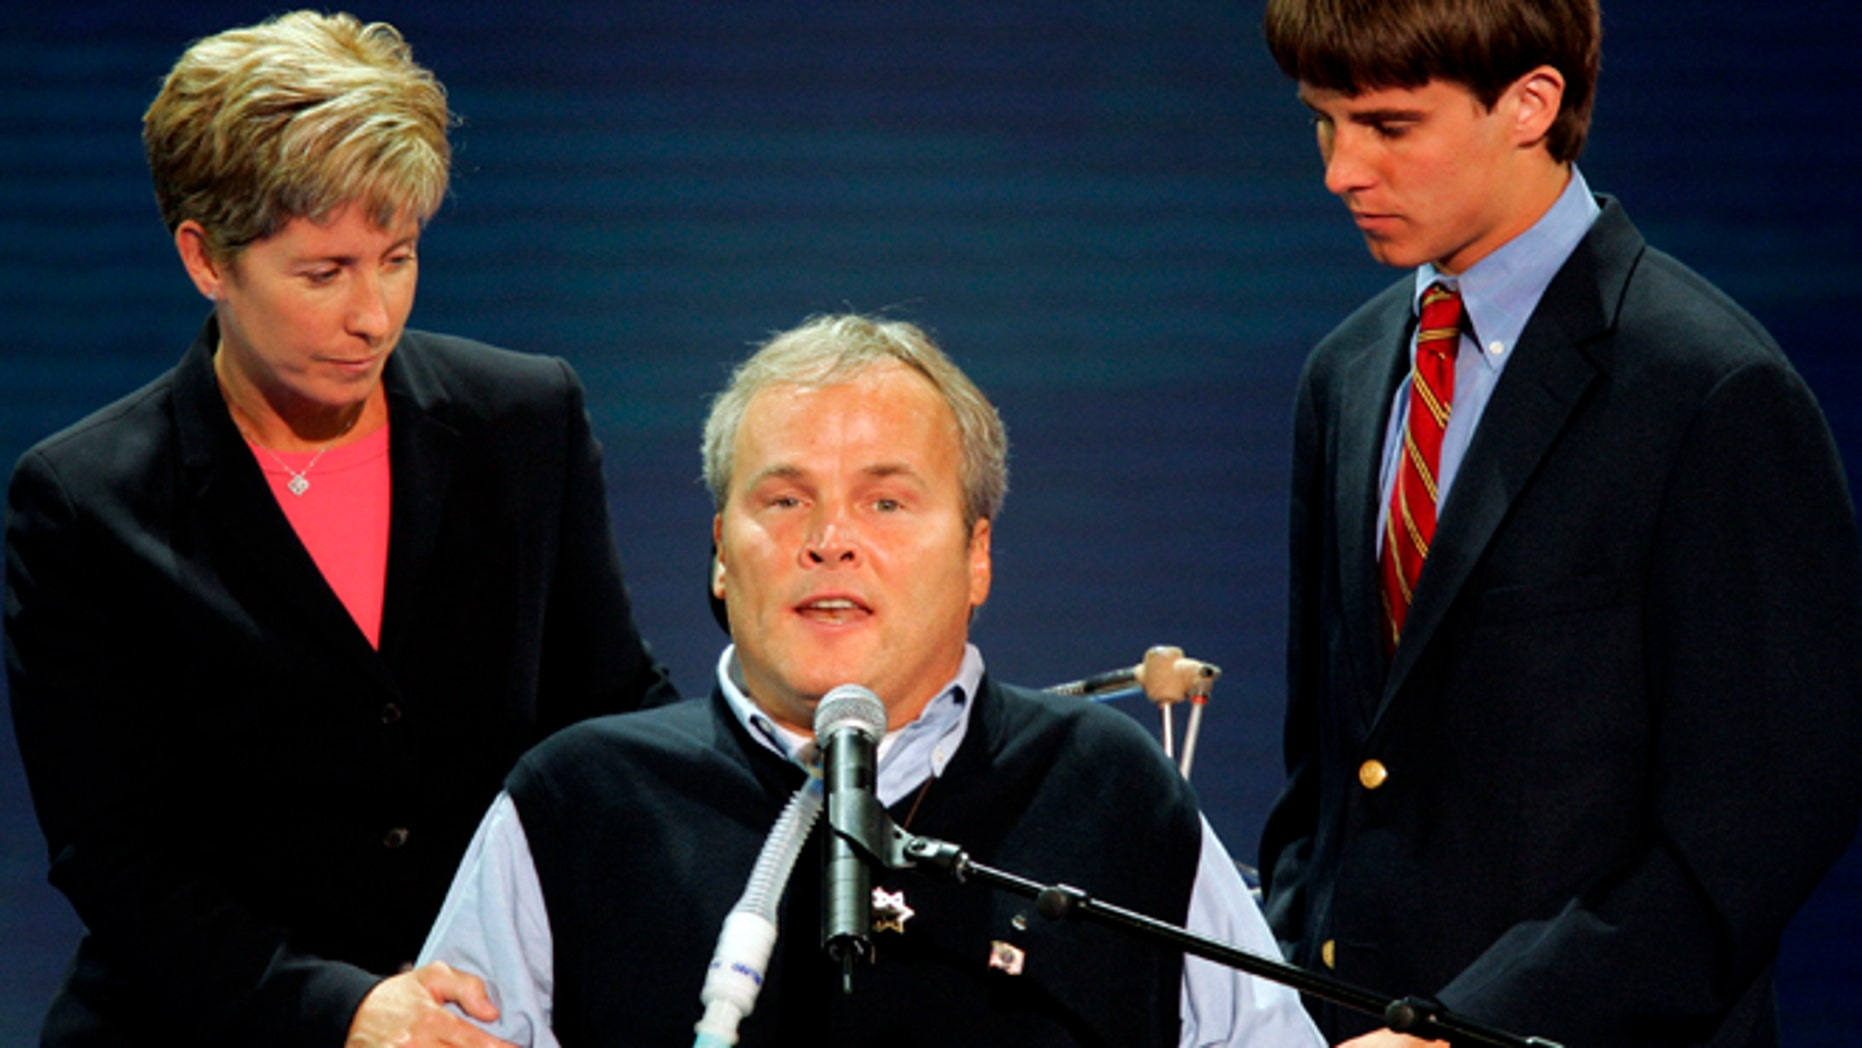 Disabled New York City police officer Steven McDonald is assisted by his wife Patti Ann and son Connor as he speaks during the second night of the 2004 Republican National Convention at Madison Square Garden in New York City, August 31, 2004.